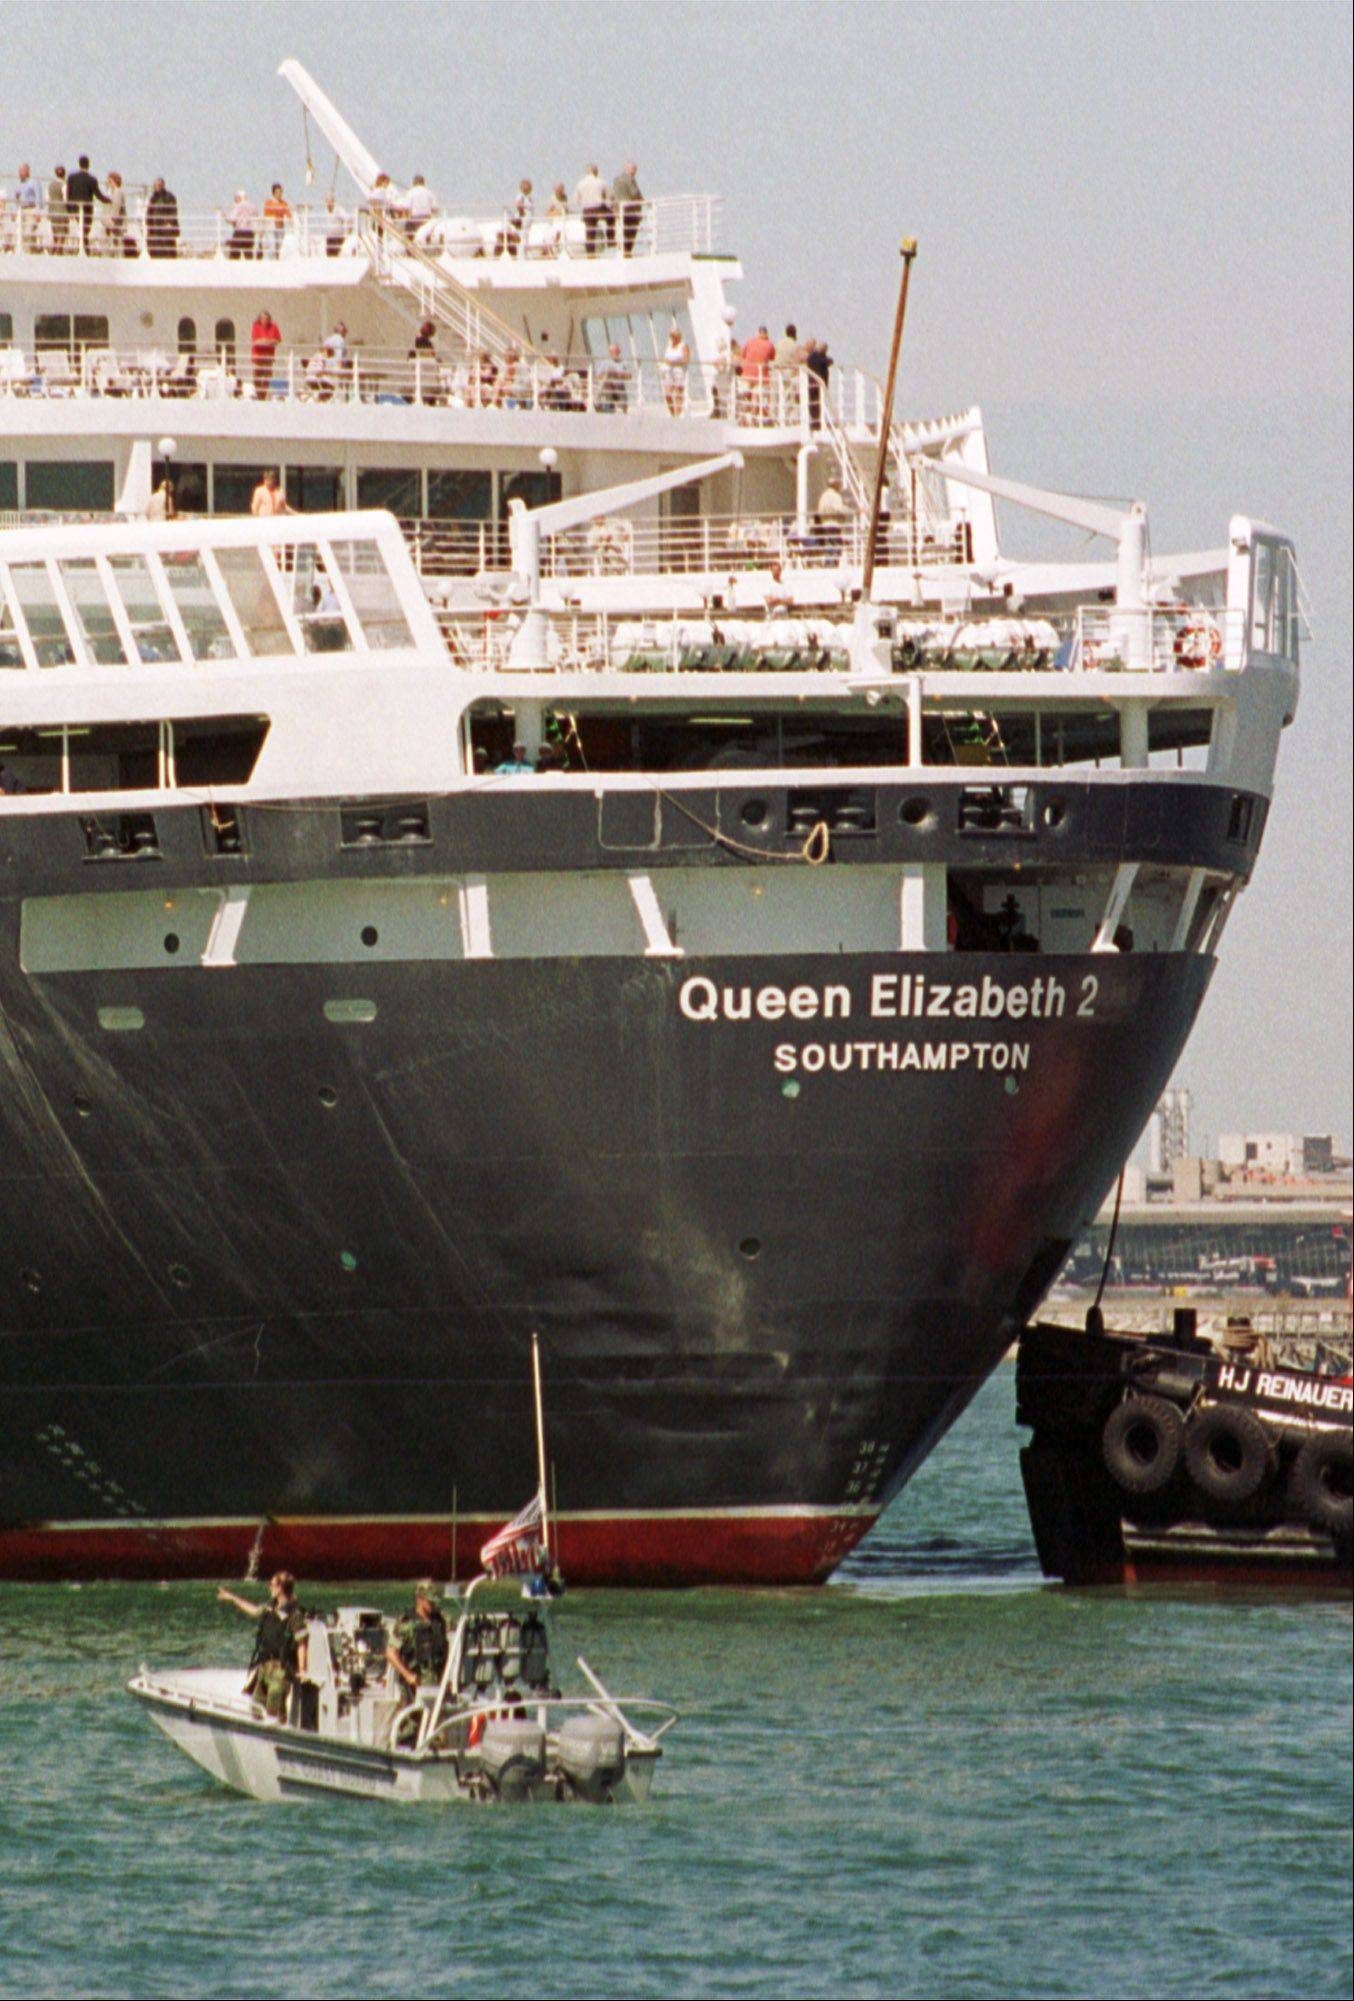 The luxury liner Queen Elizabeth 2